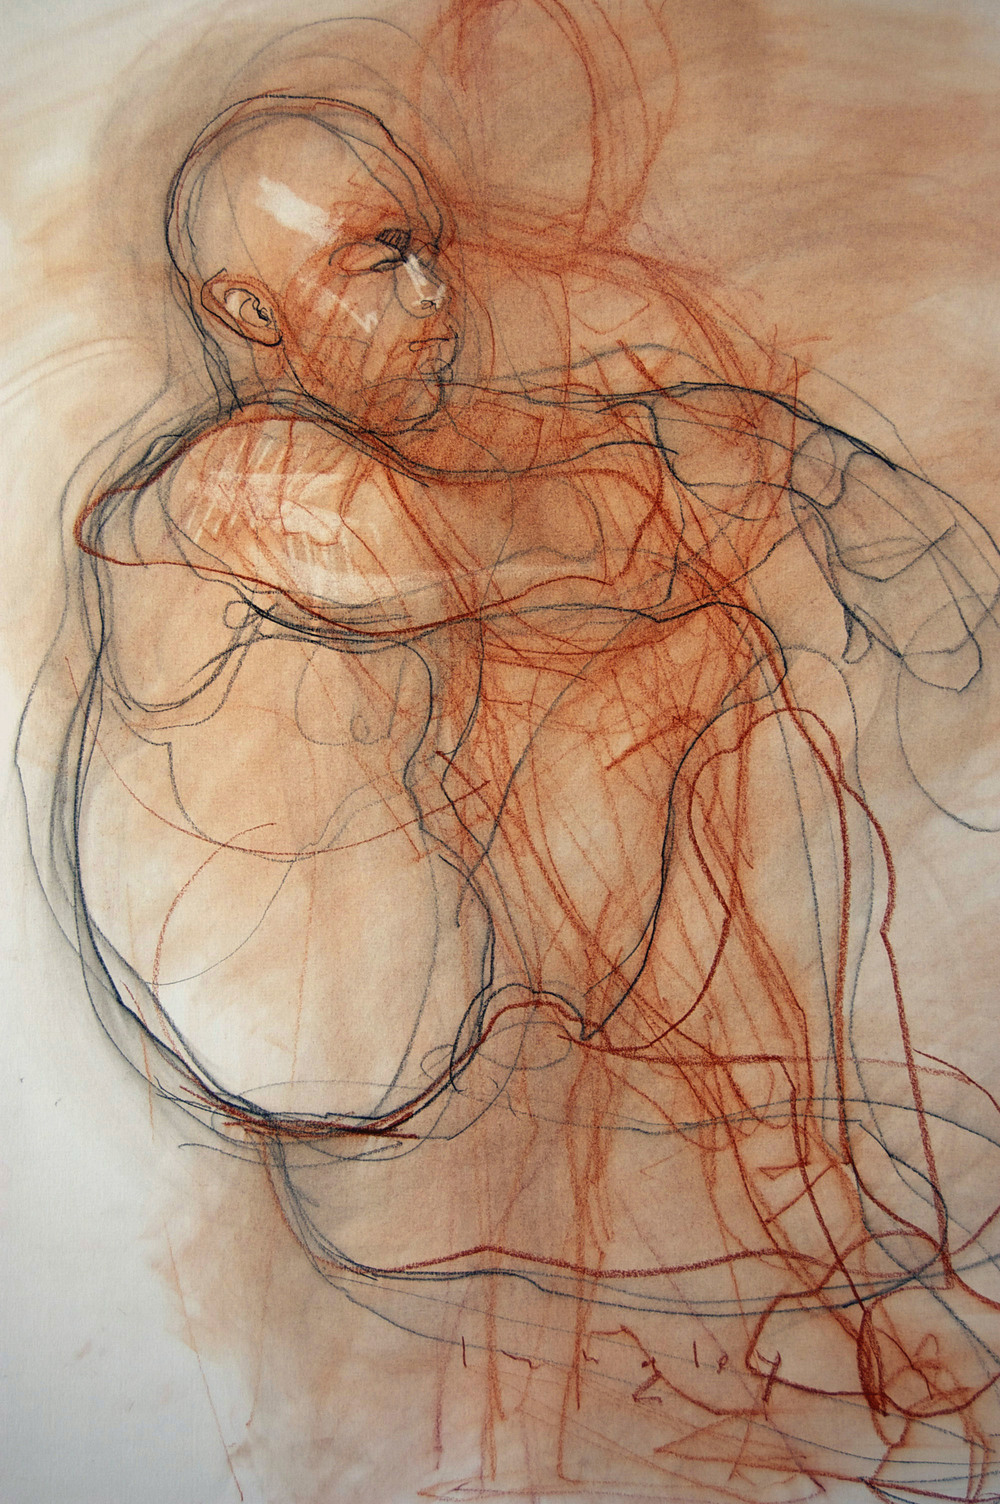 Seated male nude with elbow and knee locked / linear variation in red and black chalk, 18x24, 2010, Collection of the artist.